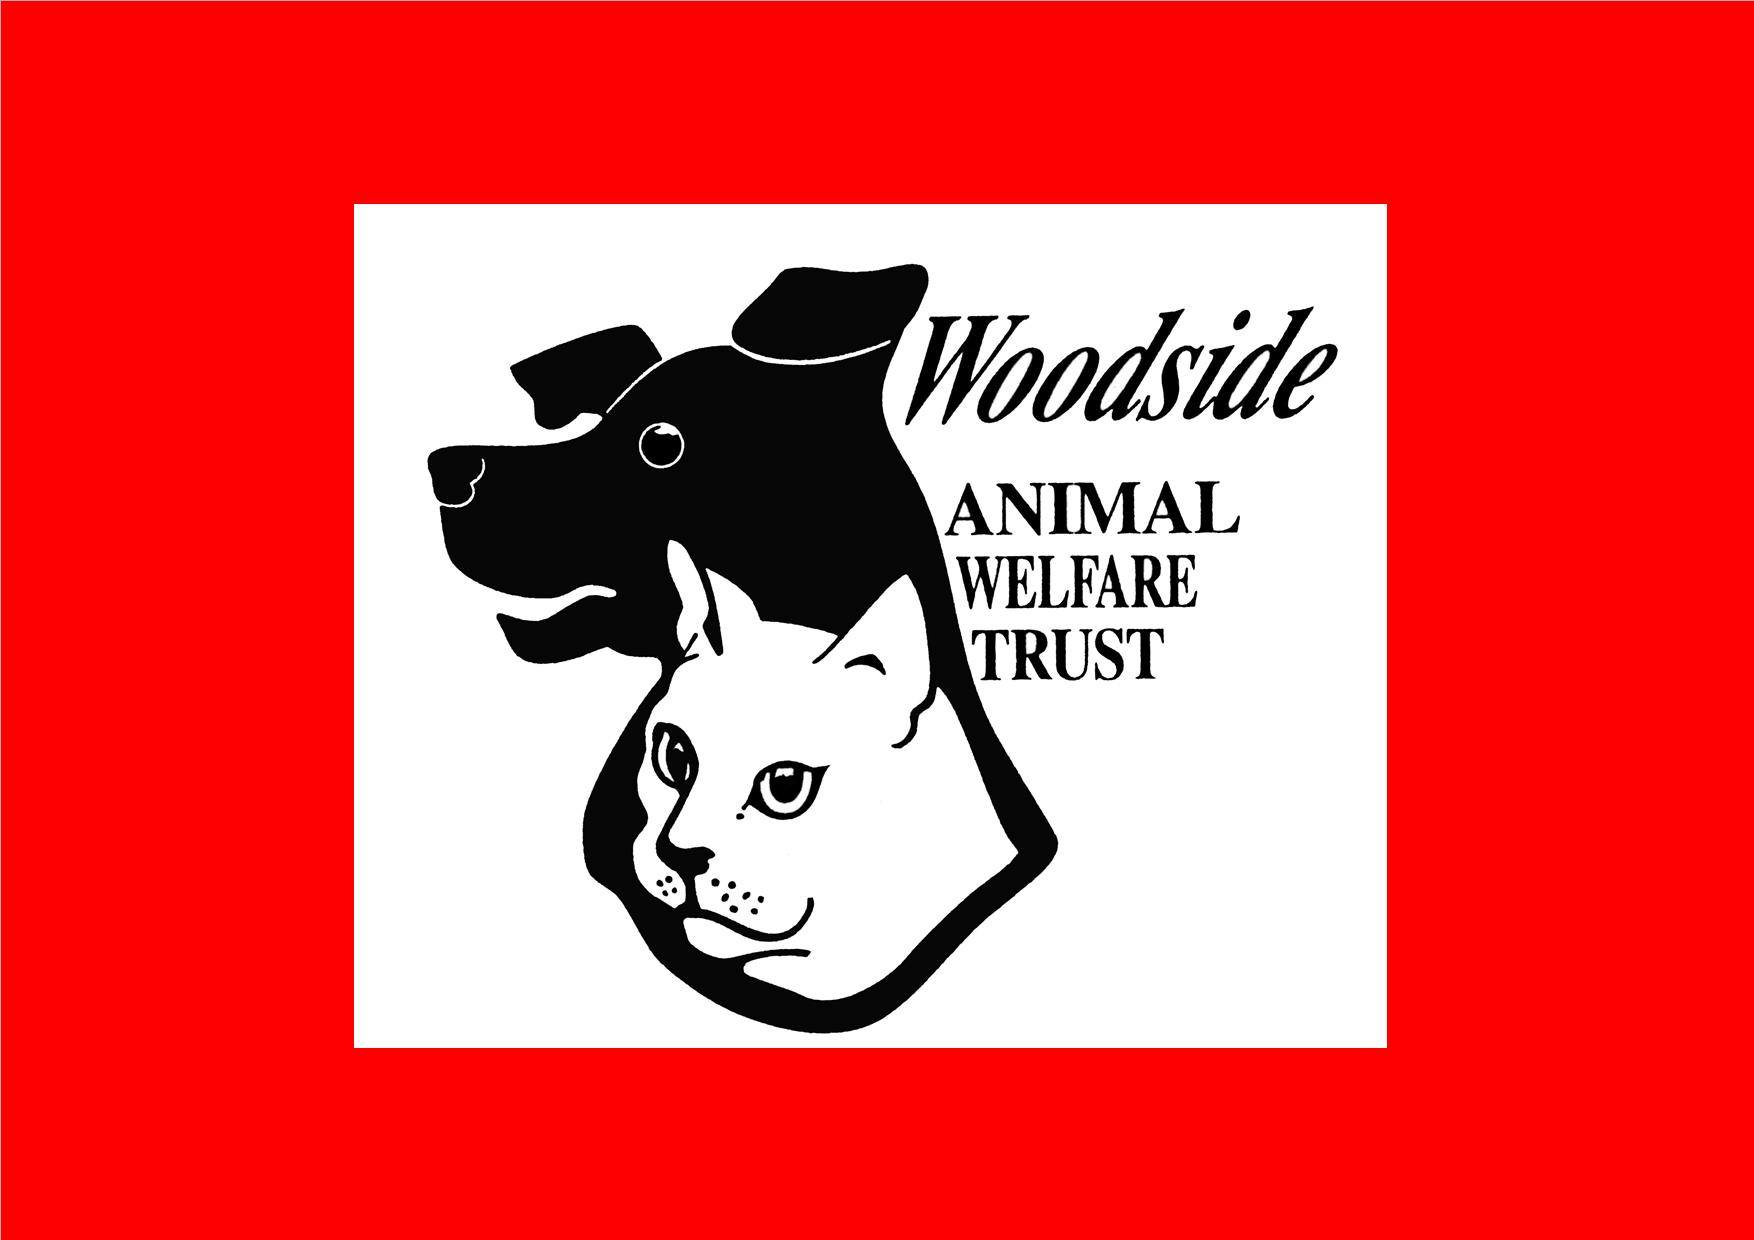 Woodside Animal Welfare